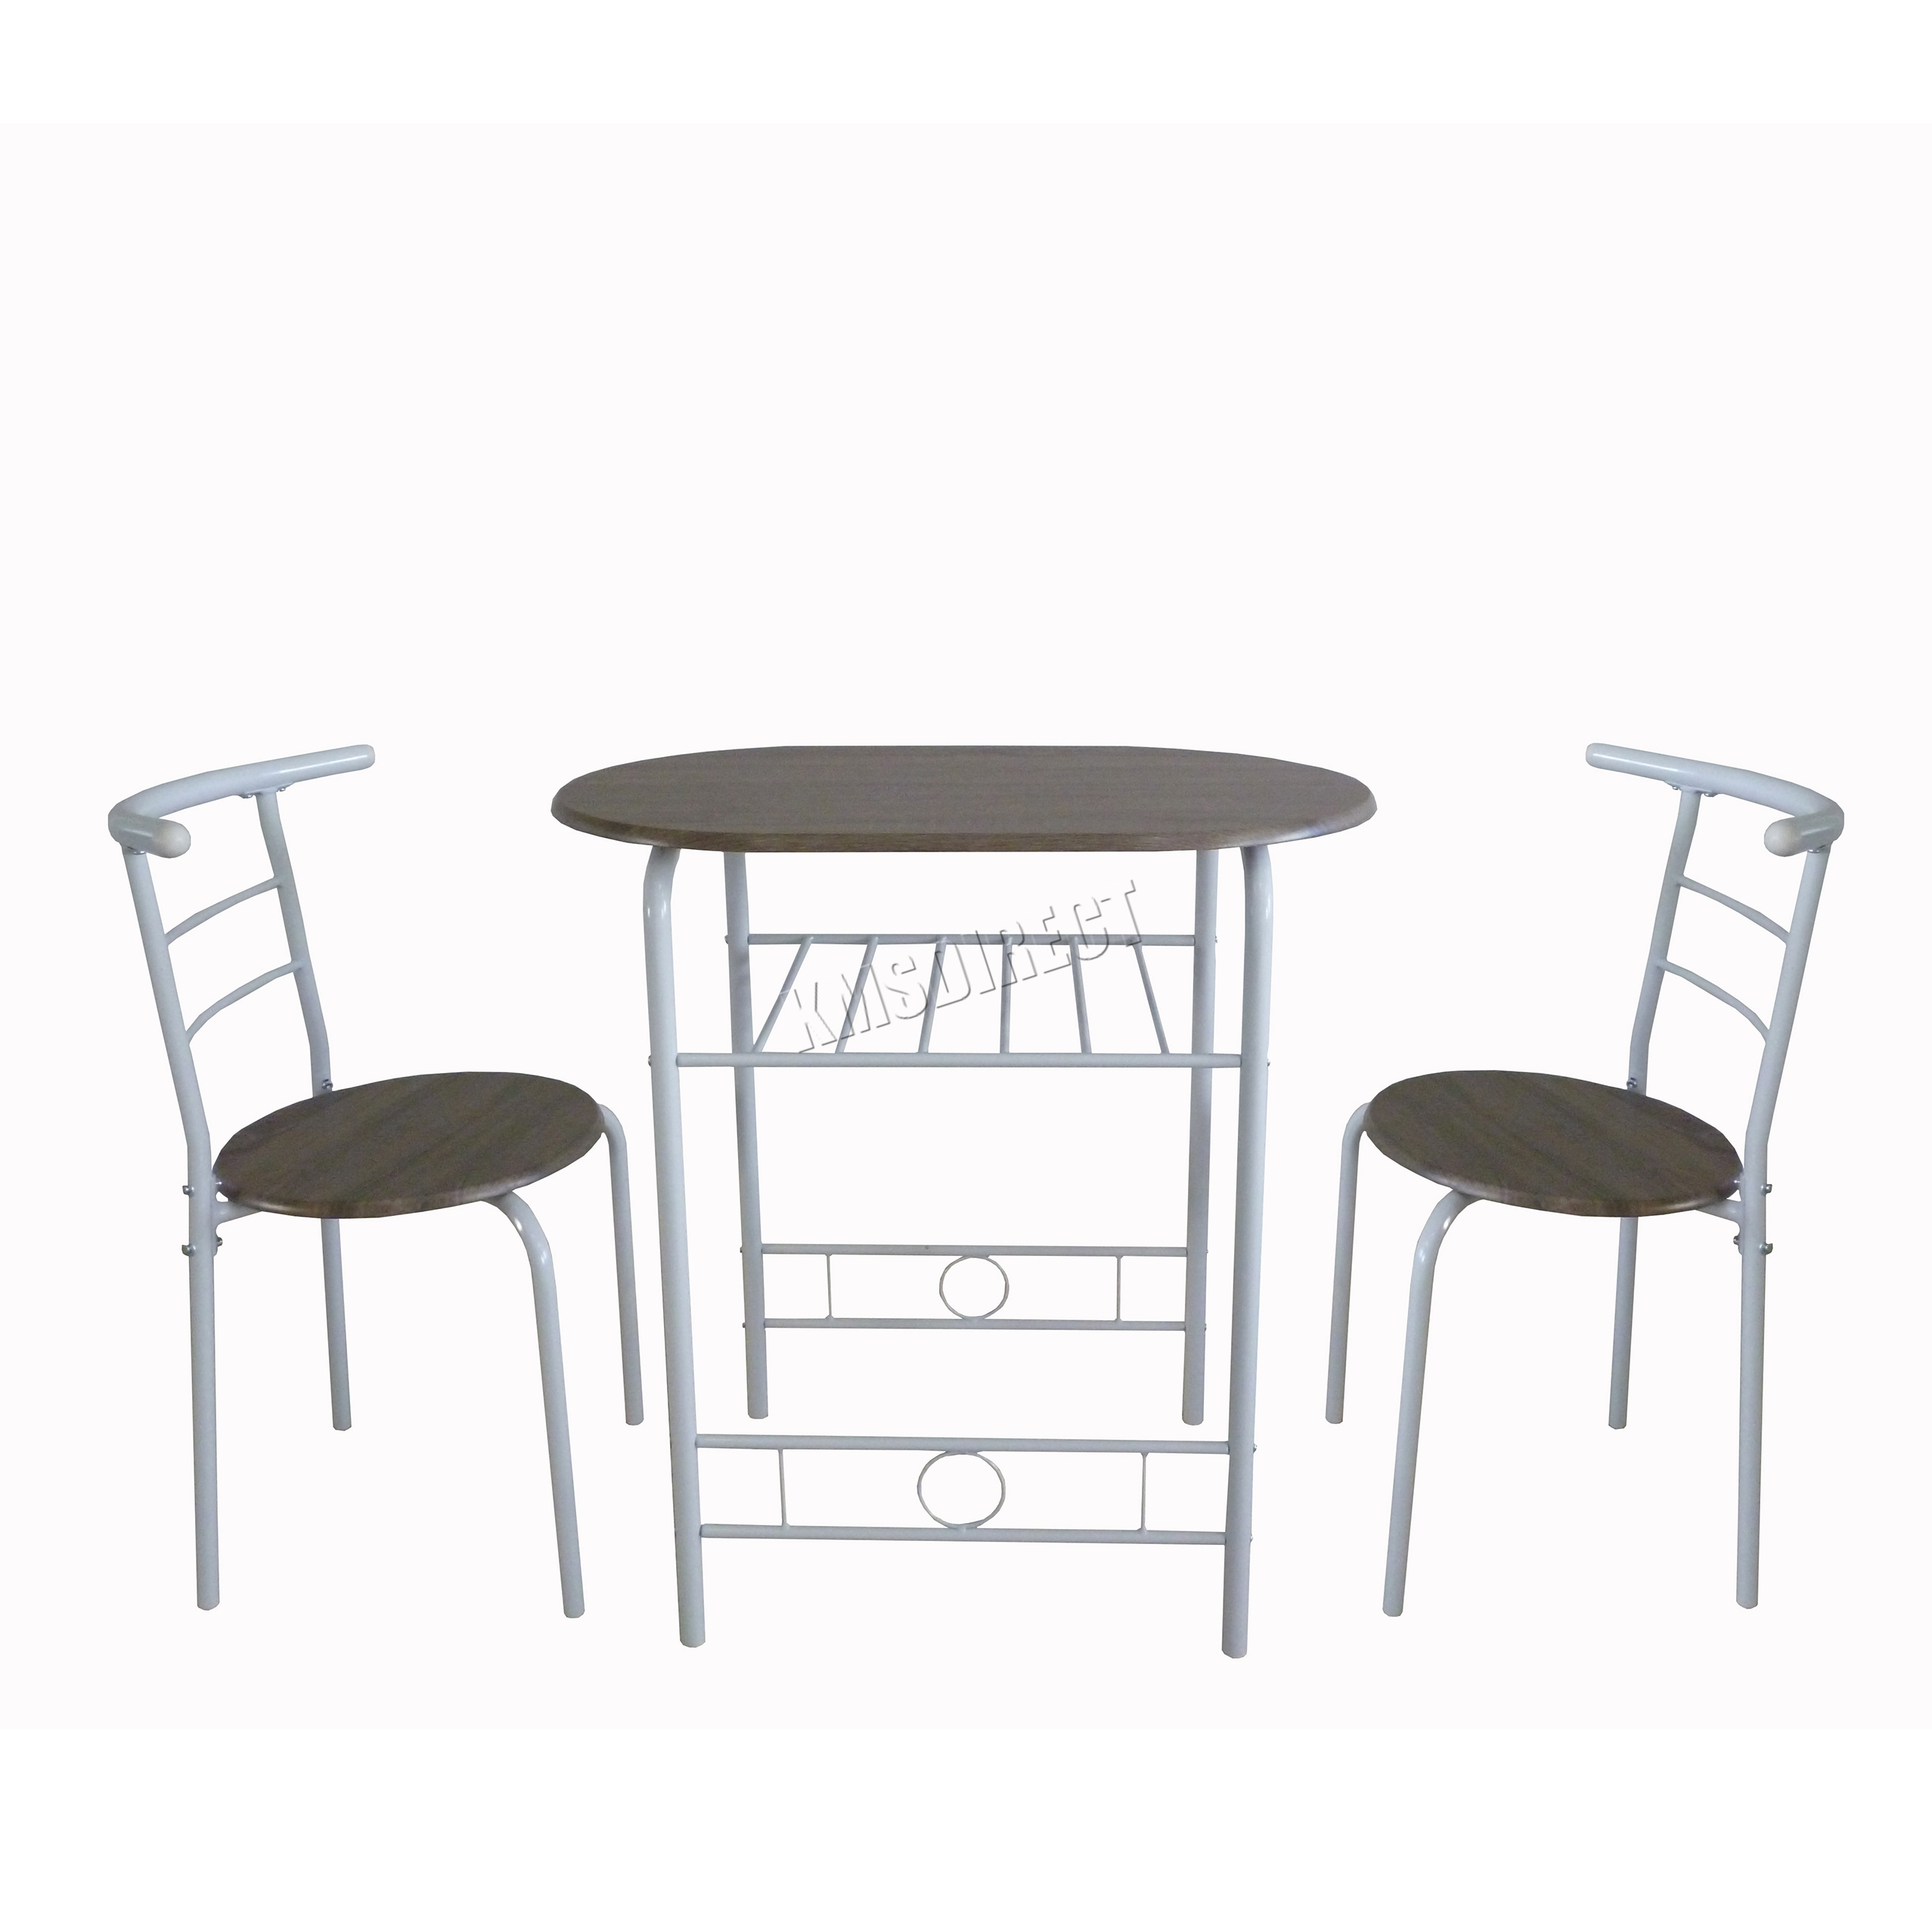 WestWood-Compact-Dining-Table-Breakfast-Bar-2-Chair-Set-Metal-MDF-Kitchen-DS06